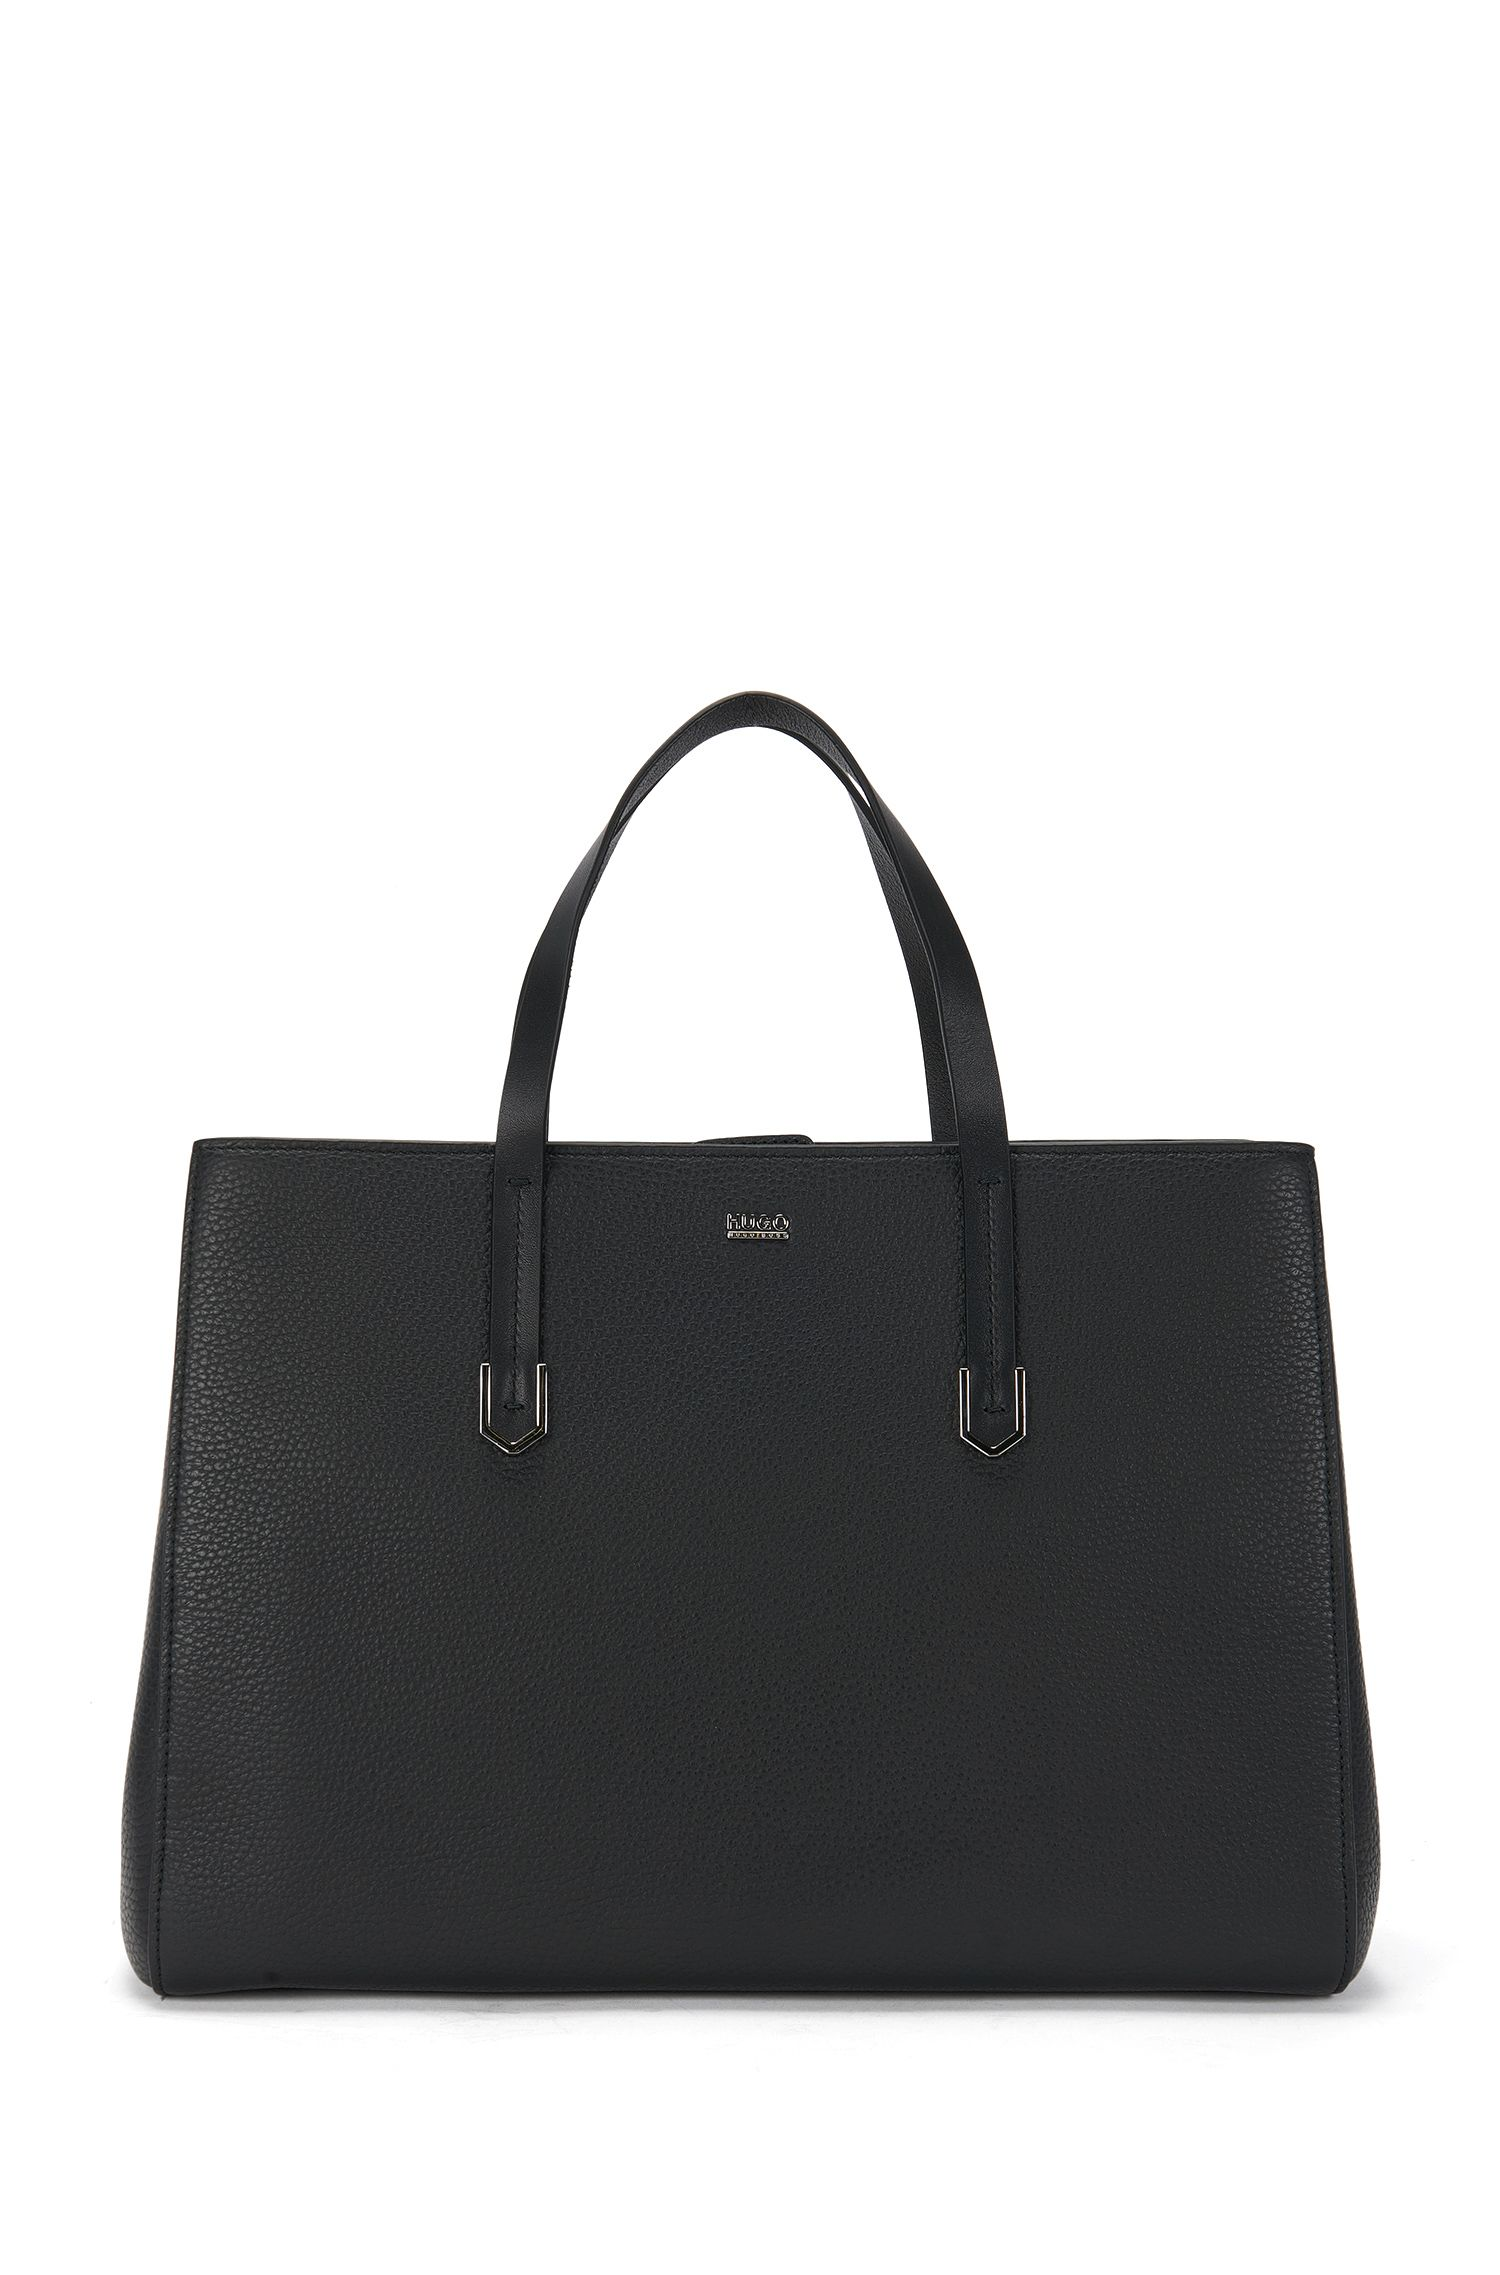 Large tote bag in textured Italian leather